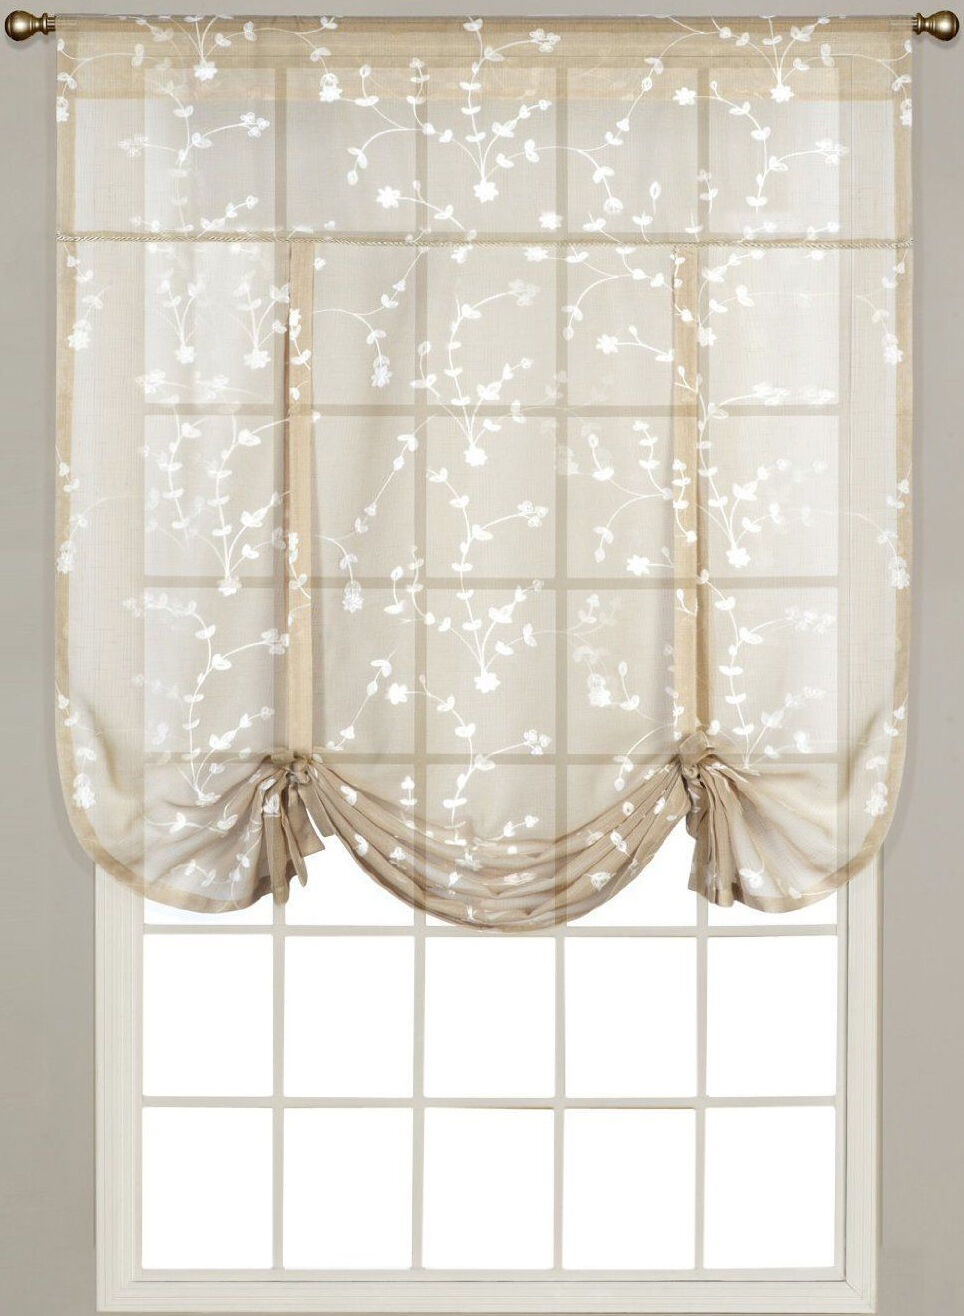 Hanging A Shower Curtain Rod Semi Sheer Tie Up Balloon Cur